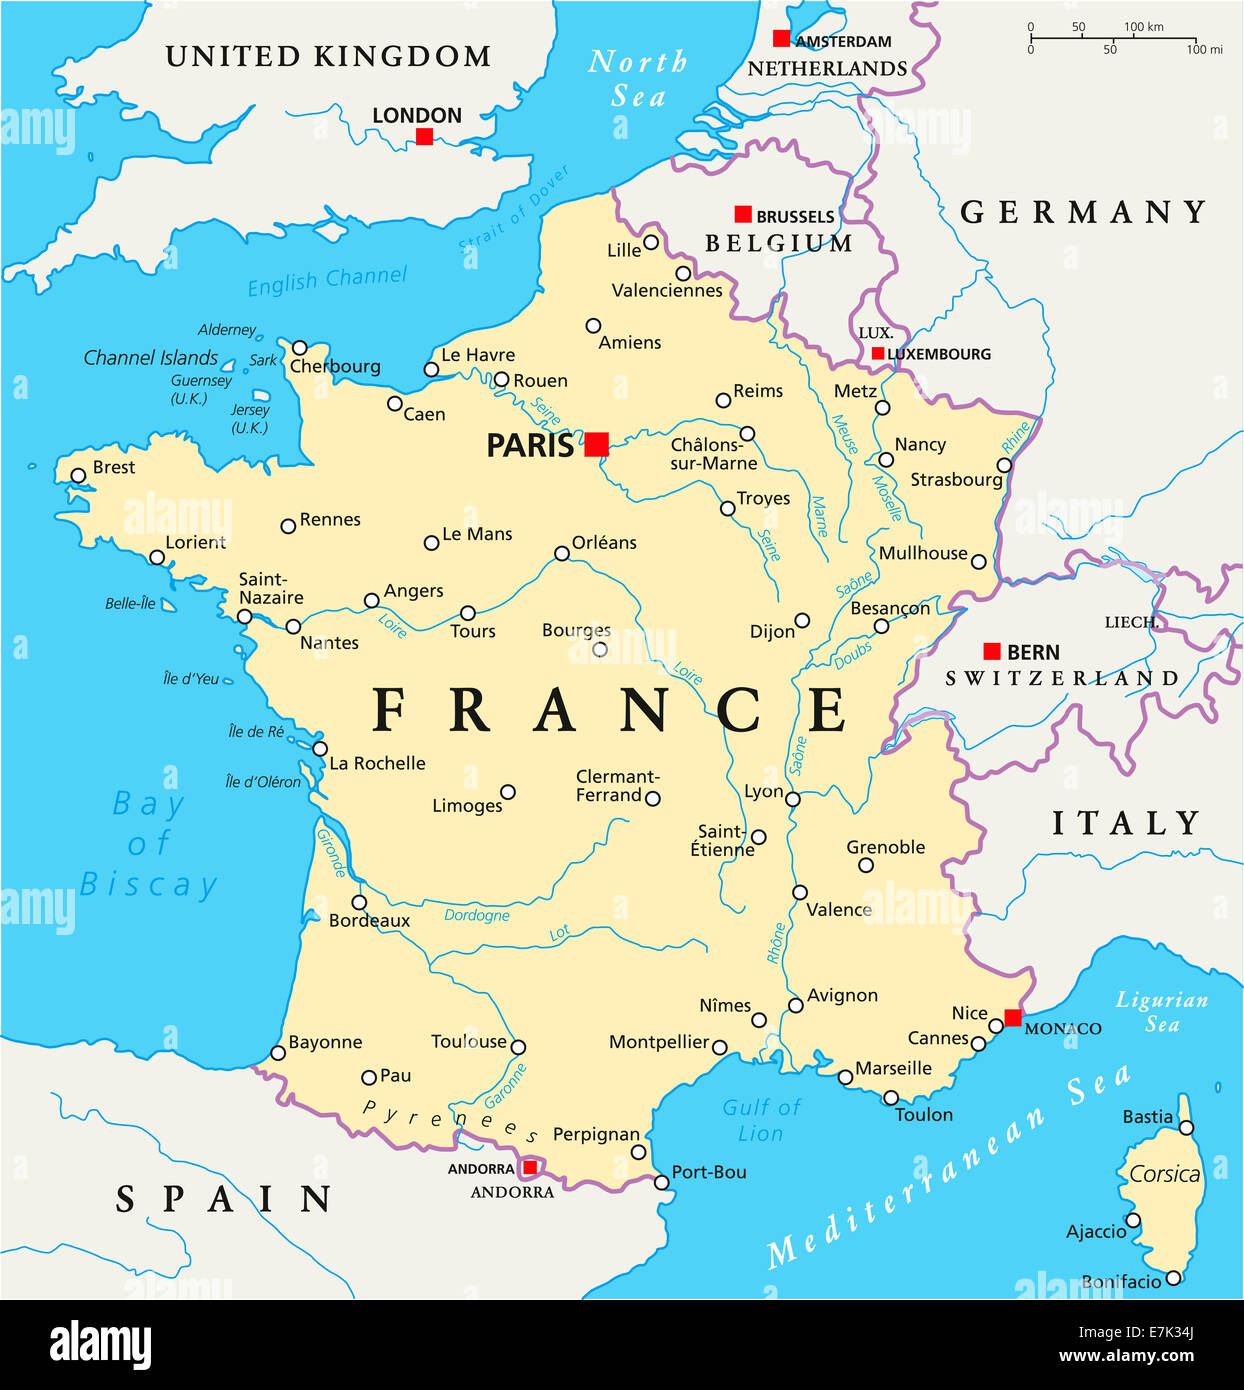 Outline Political Map Of France.France Political Map With Capital Paris National Borders Most